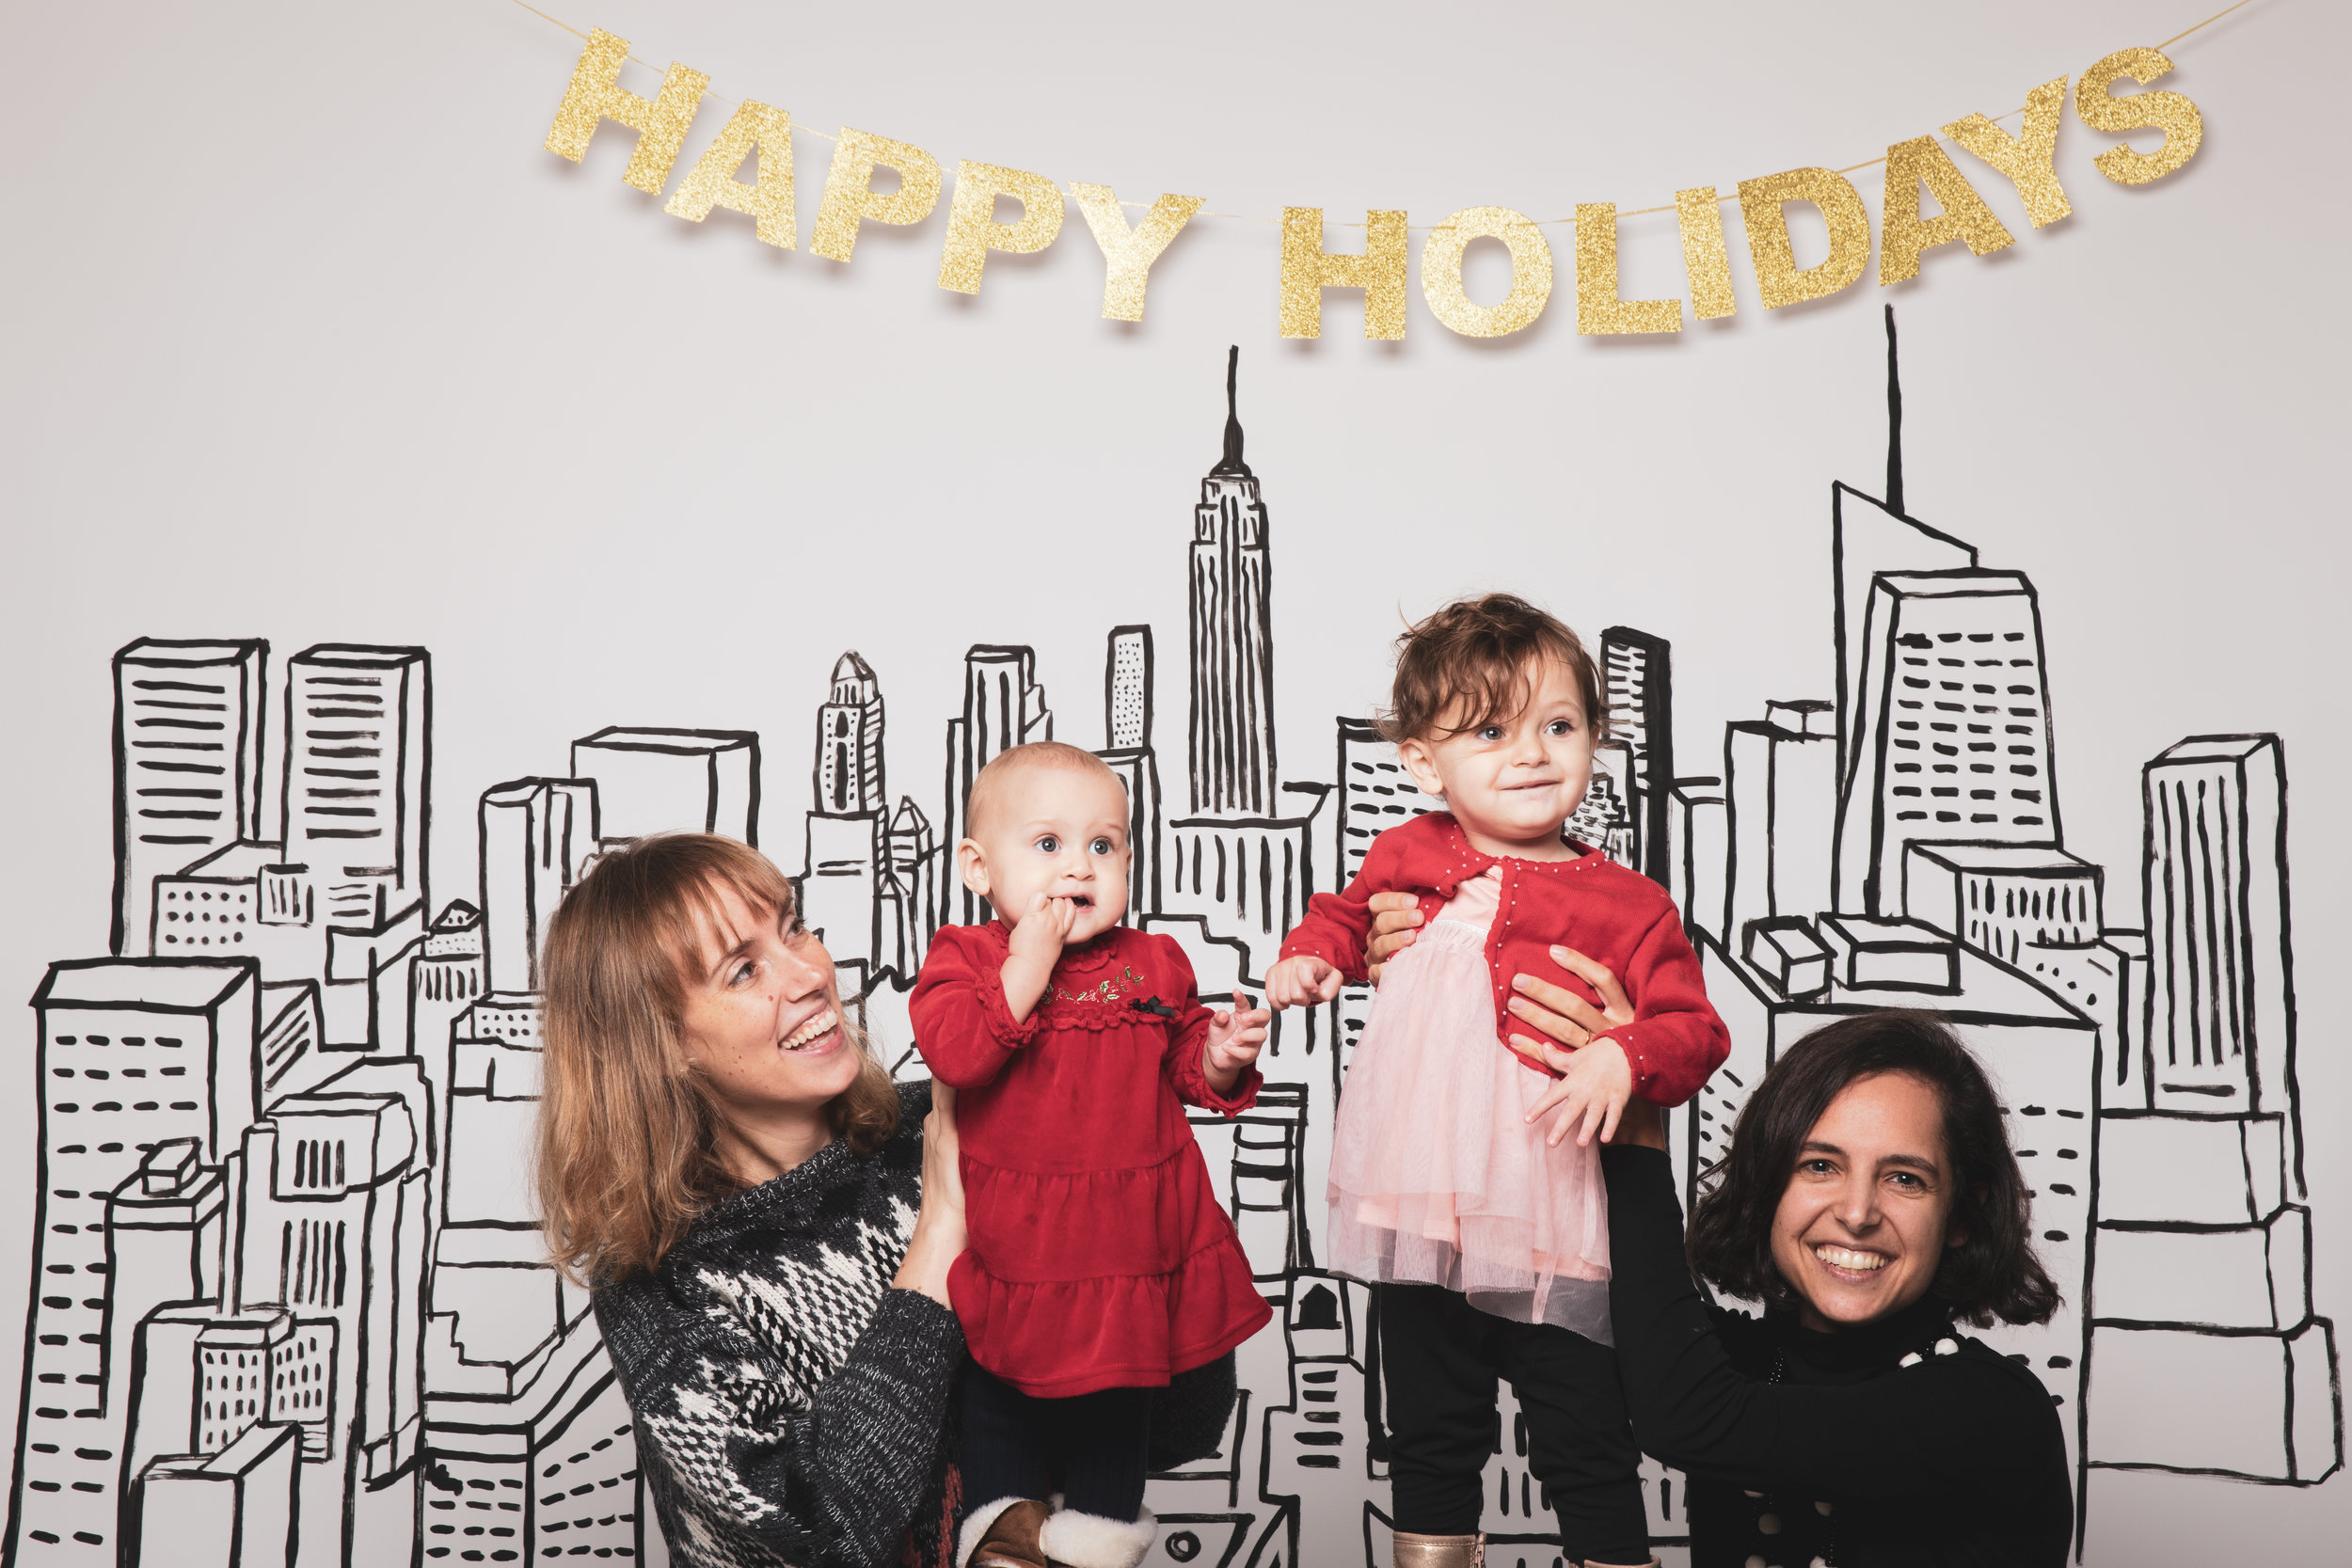 holidayfamportraits-9209.jpg